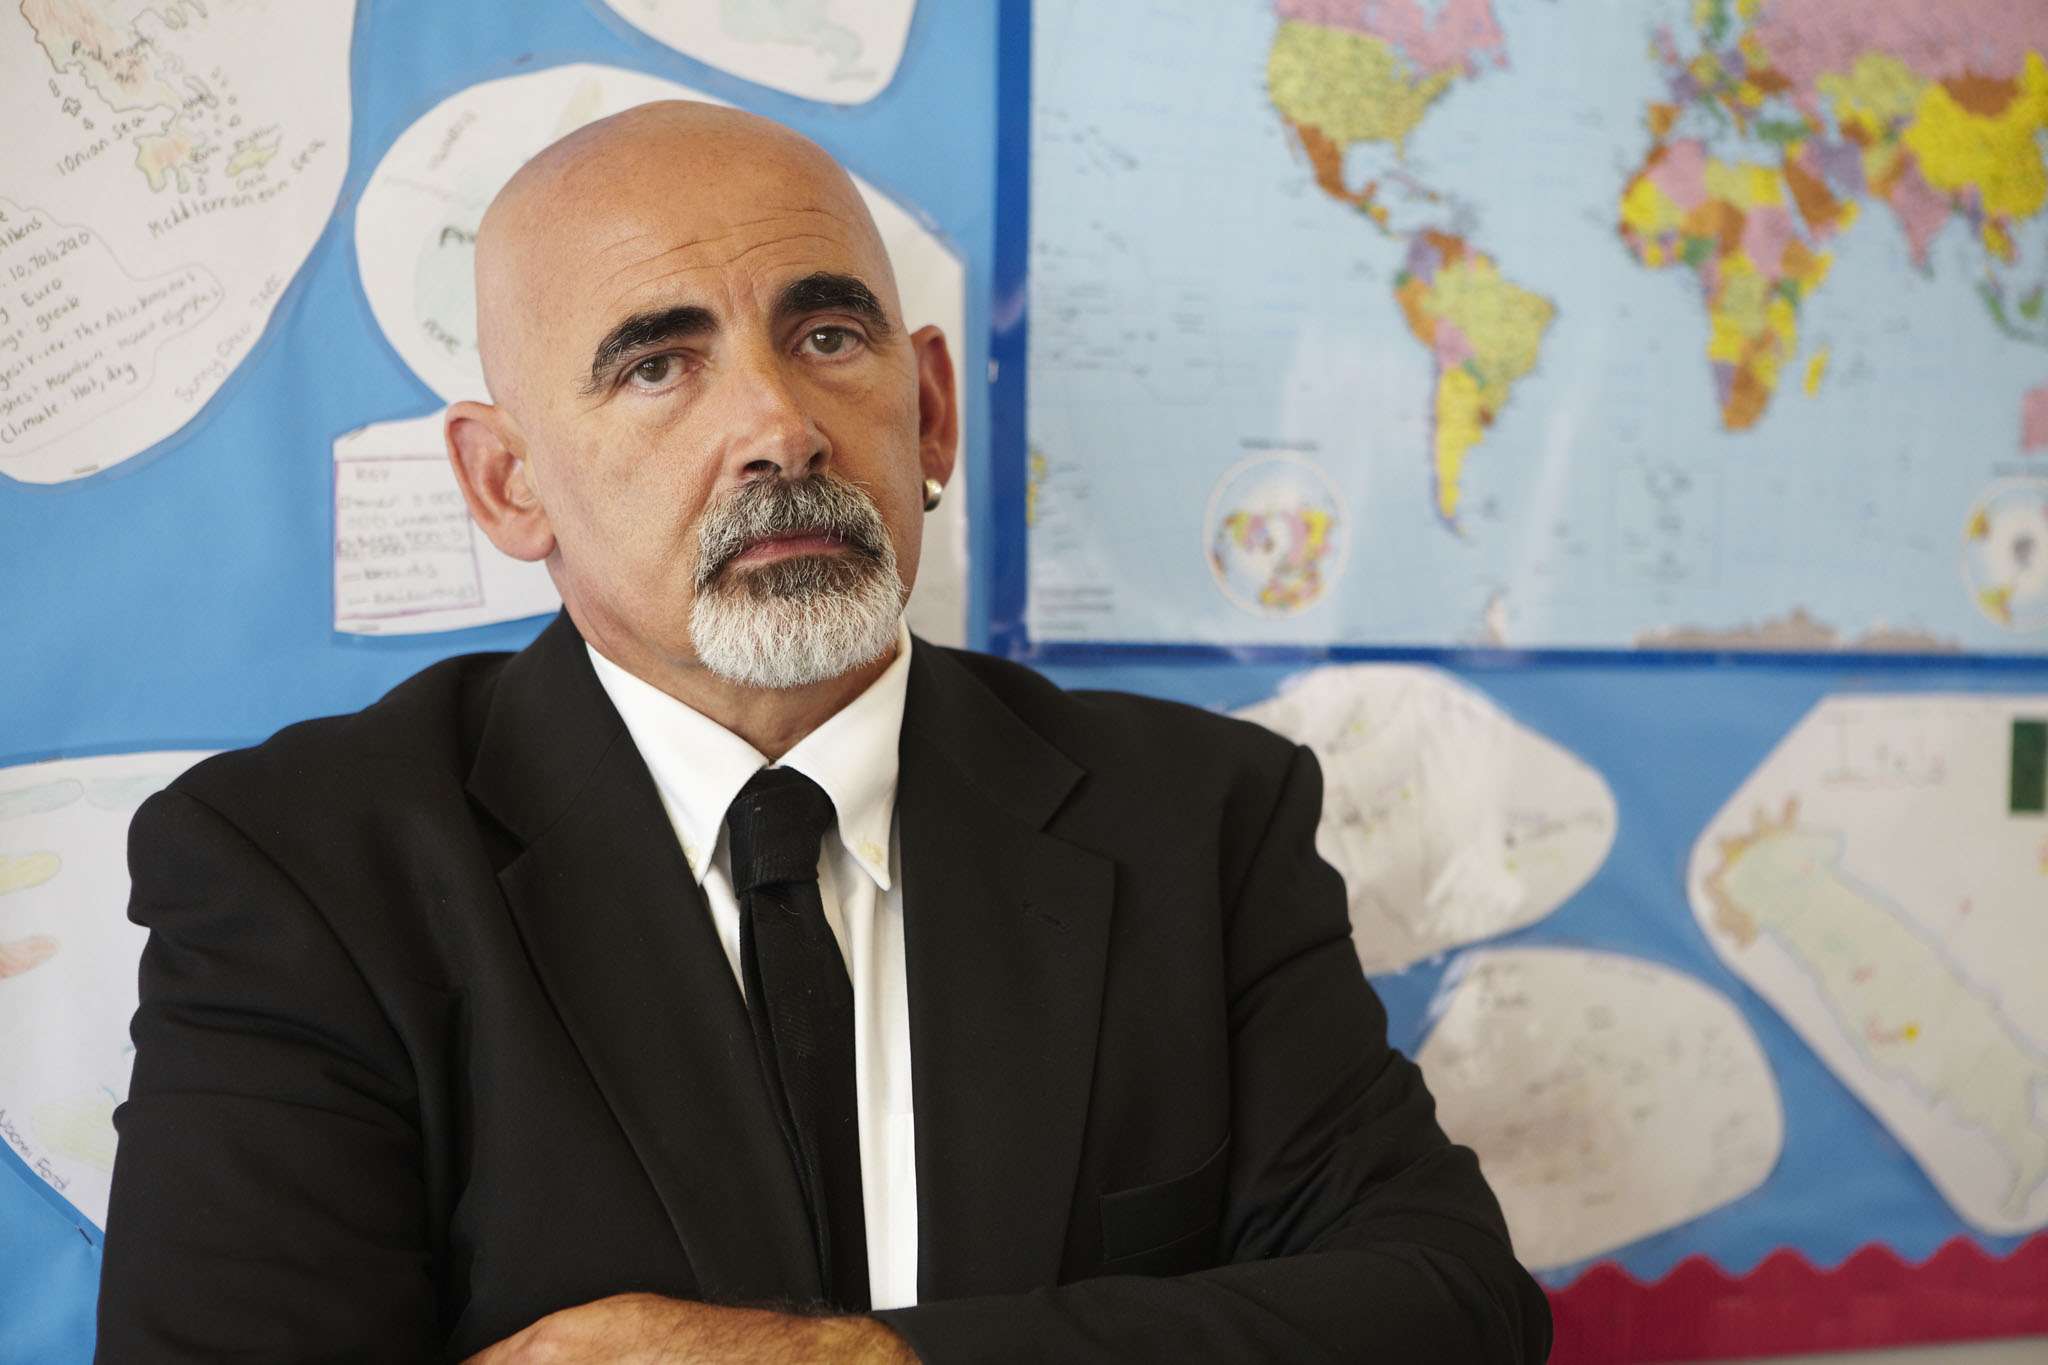 Dylan Wiliam at Hertswood School